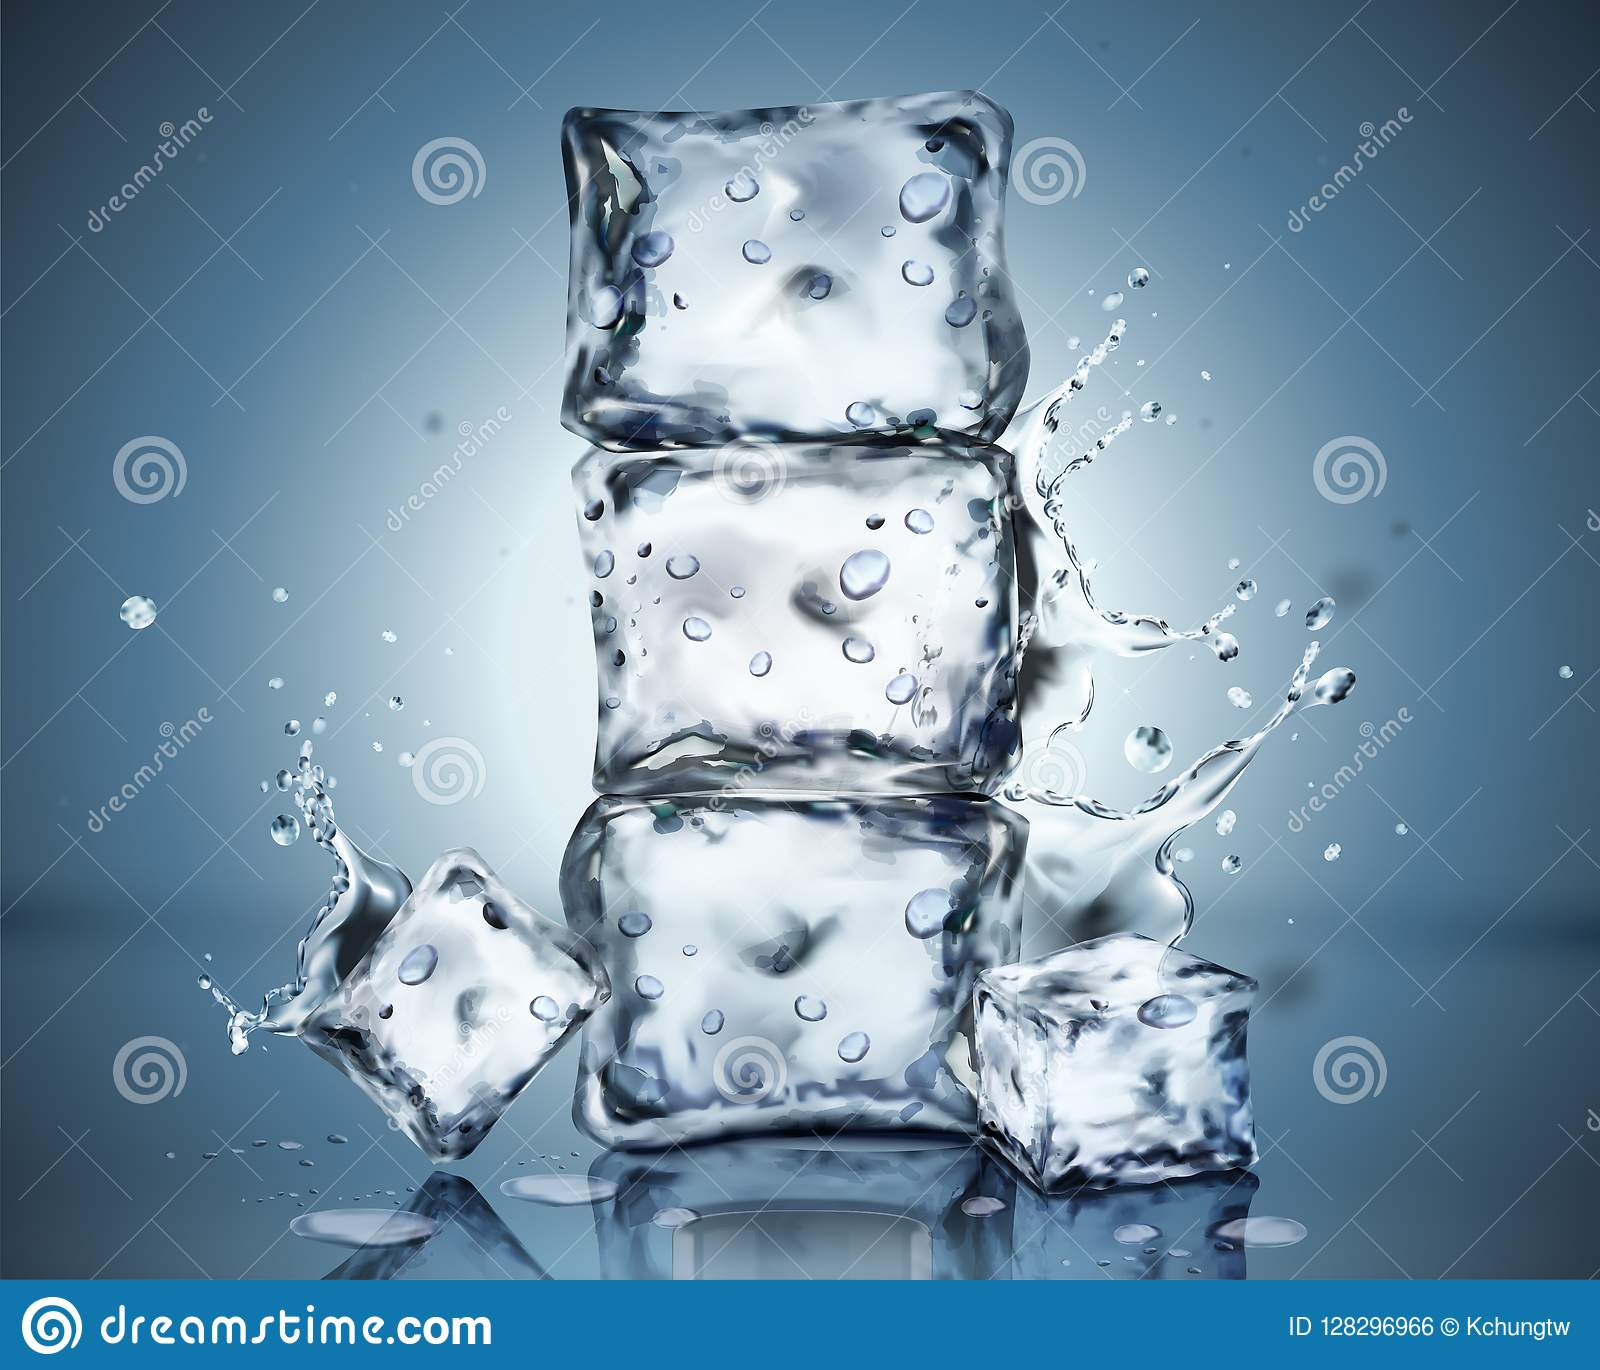 Set Of Ice Cubes Special Effects Stock Vector - Illustration of